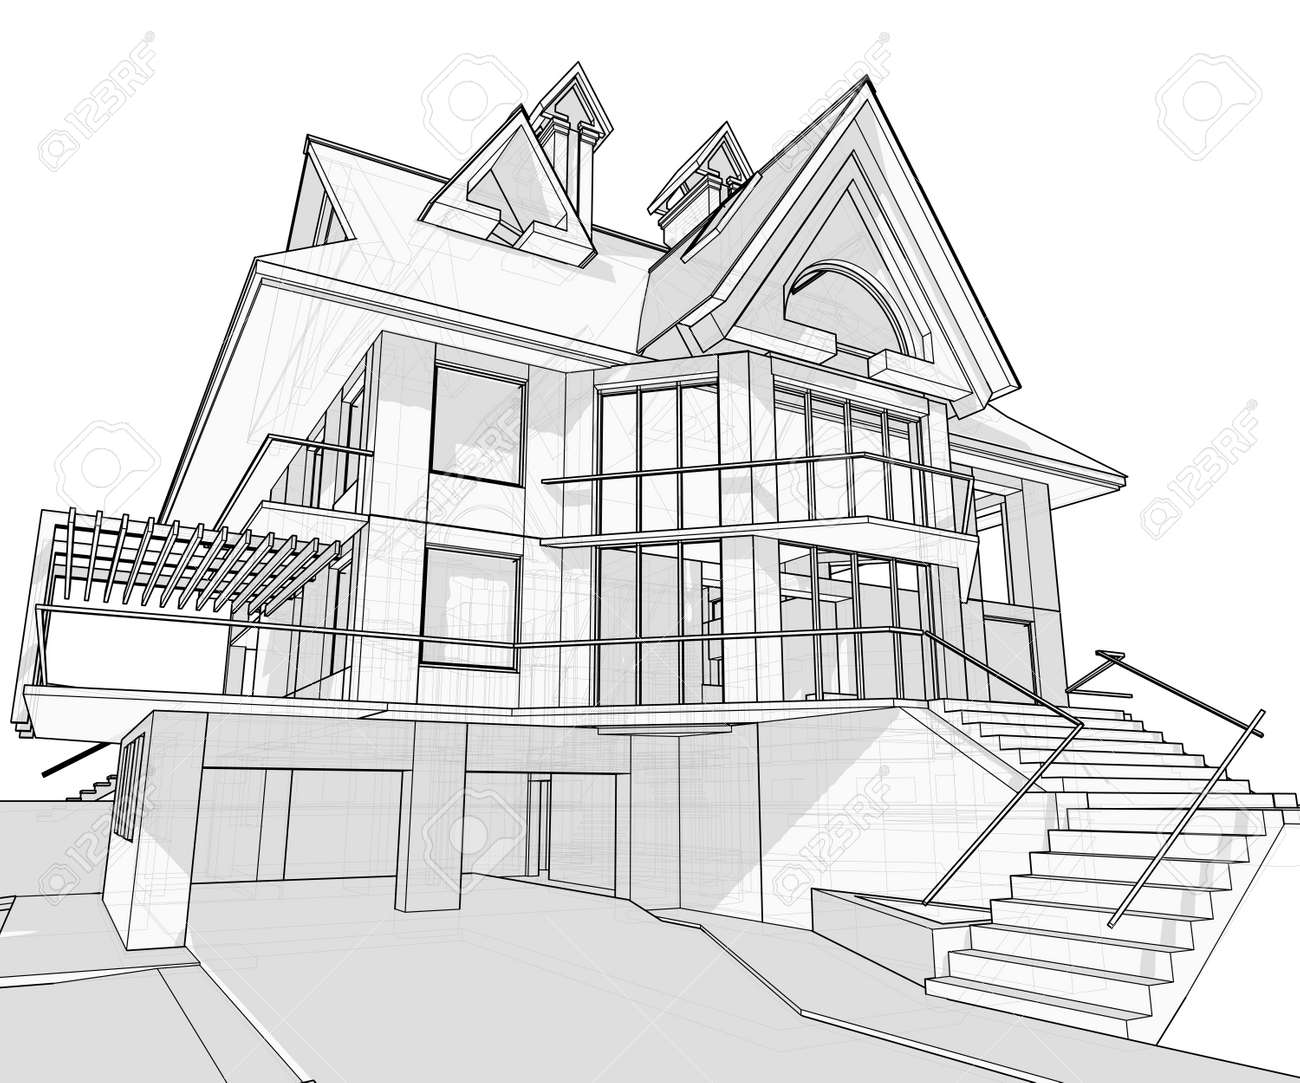 House Architecture Sketch 47,955 sketch house stock vector illustration and royalty free